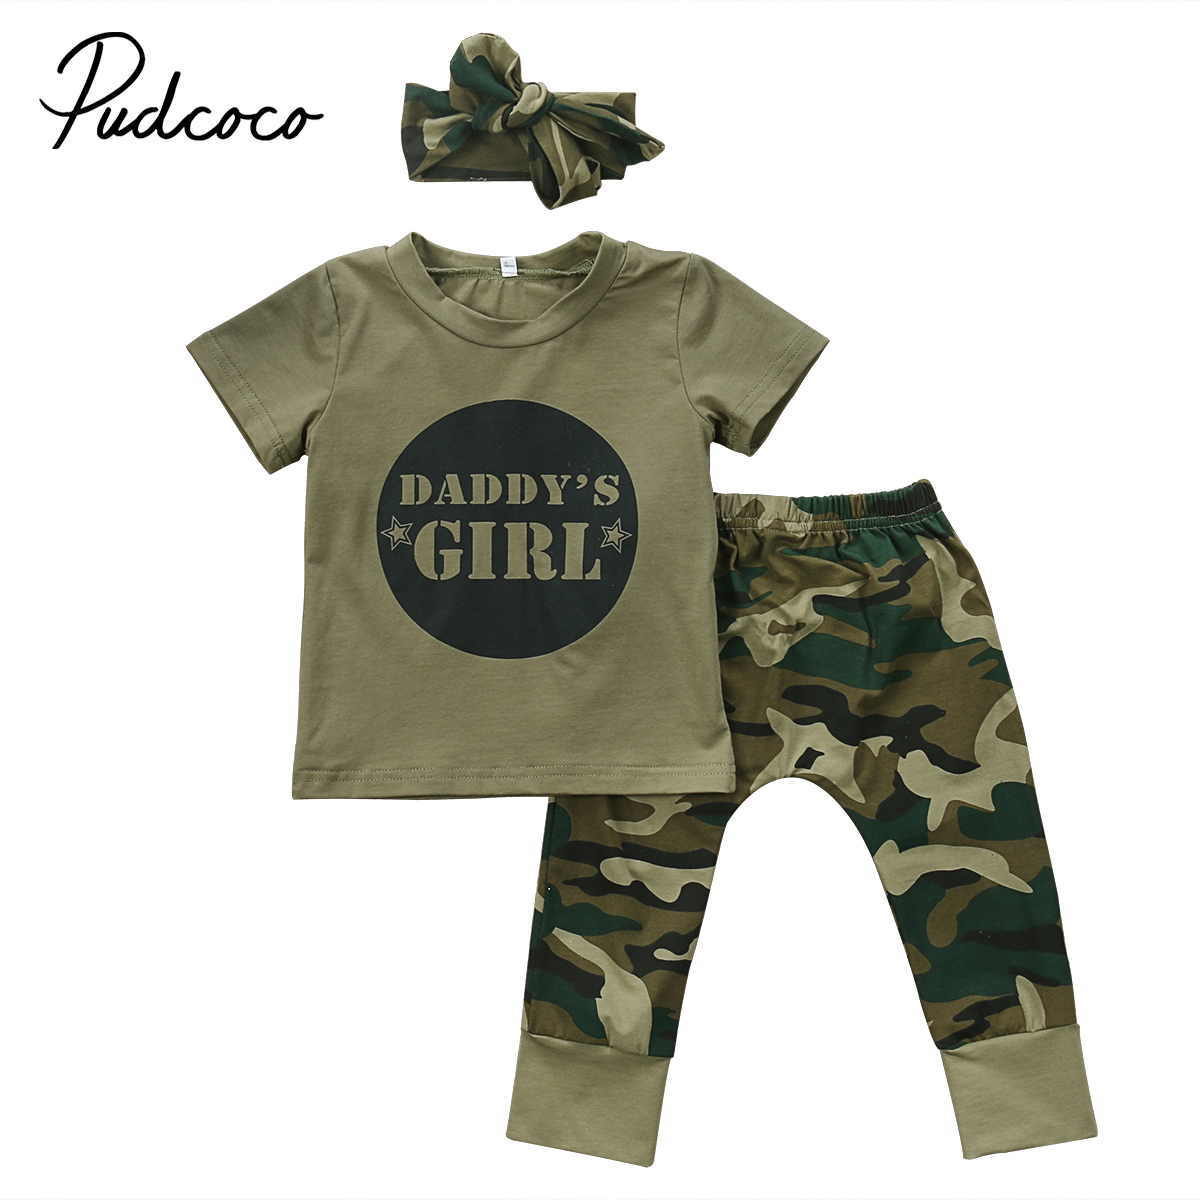 Summer Newborn Baby Boy Girls Camouflage T-shirt Tops+Pants Outfits Set Clothes Army Green Children Letters Print Clothing 0-24M все цены